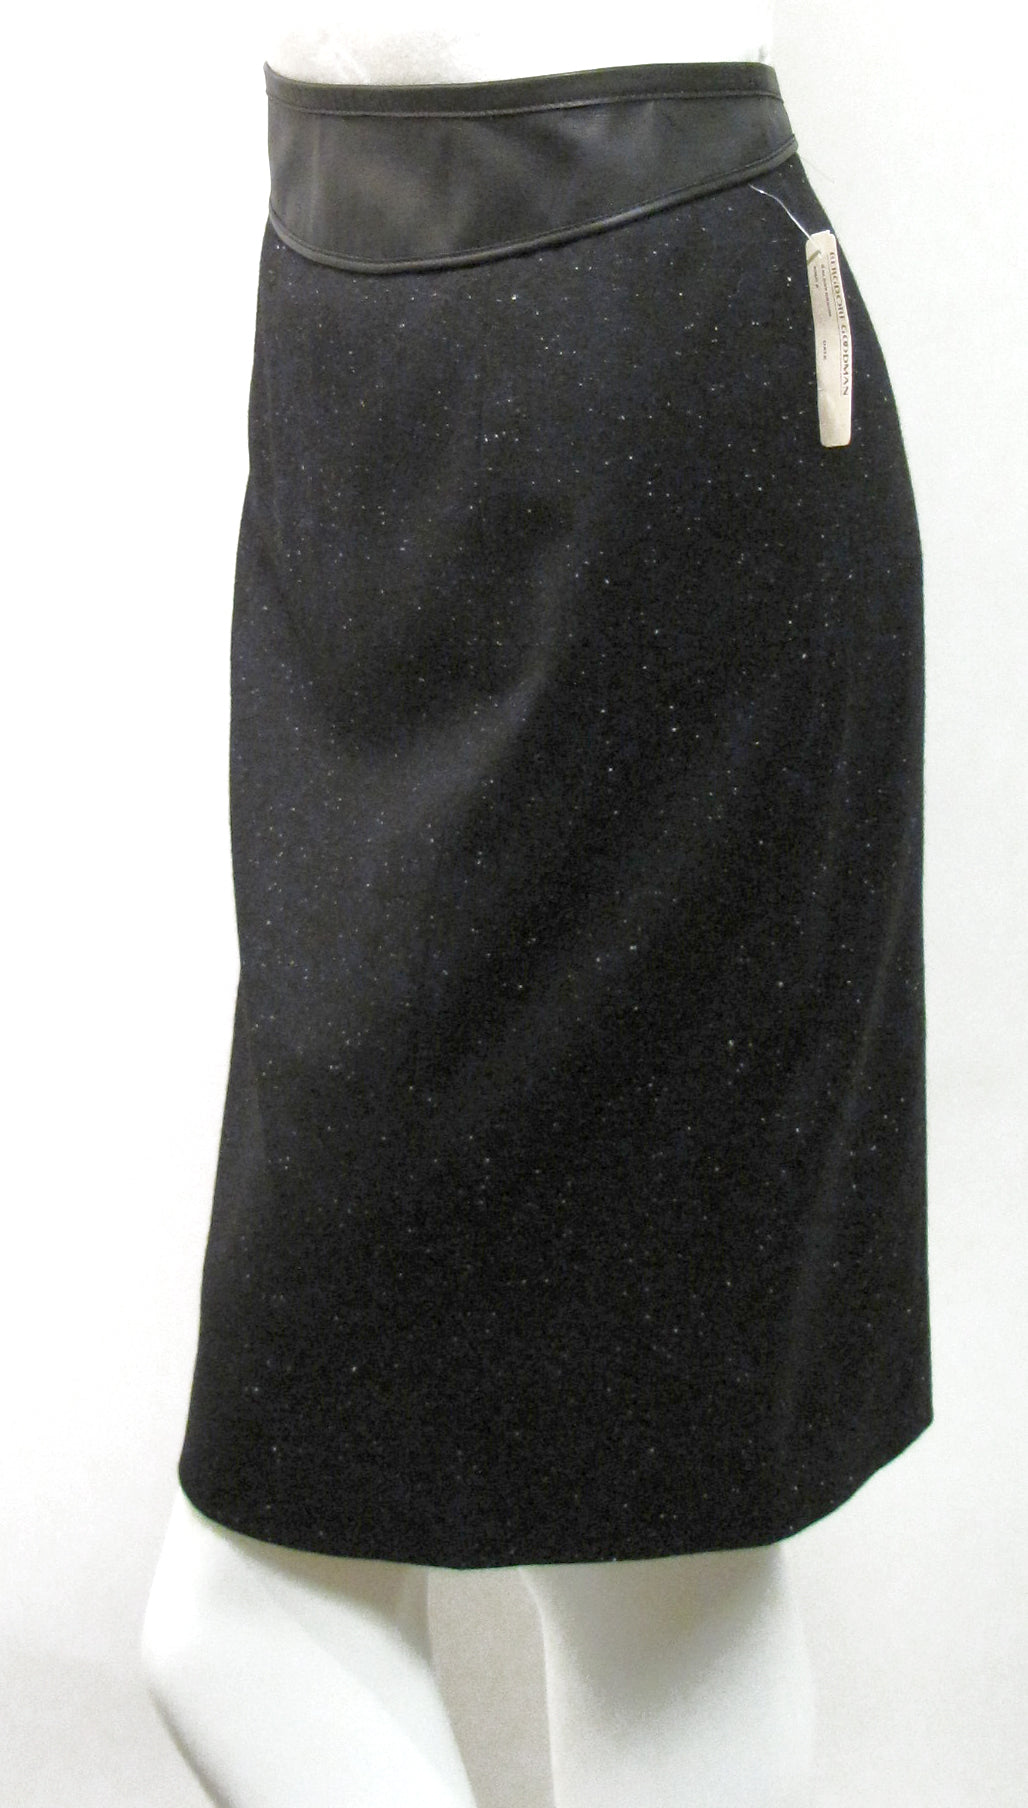 New NARCISO RODRIGUEZ Black Wool 2-Way Zipper Back Knee-Length Pencil skirt Sz44